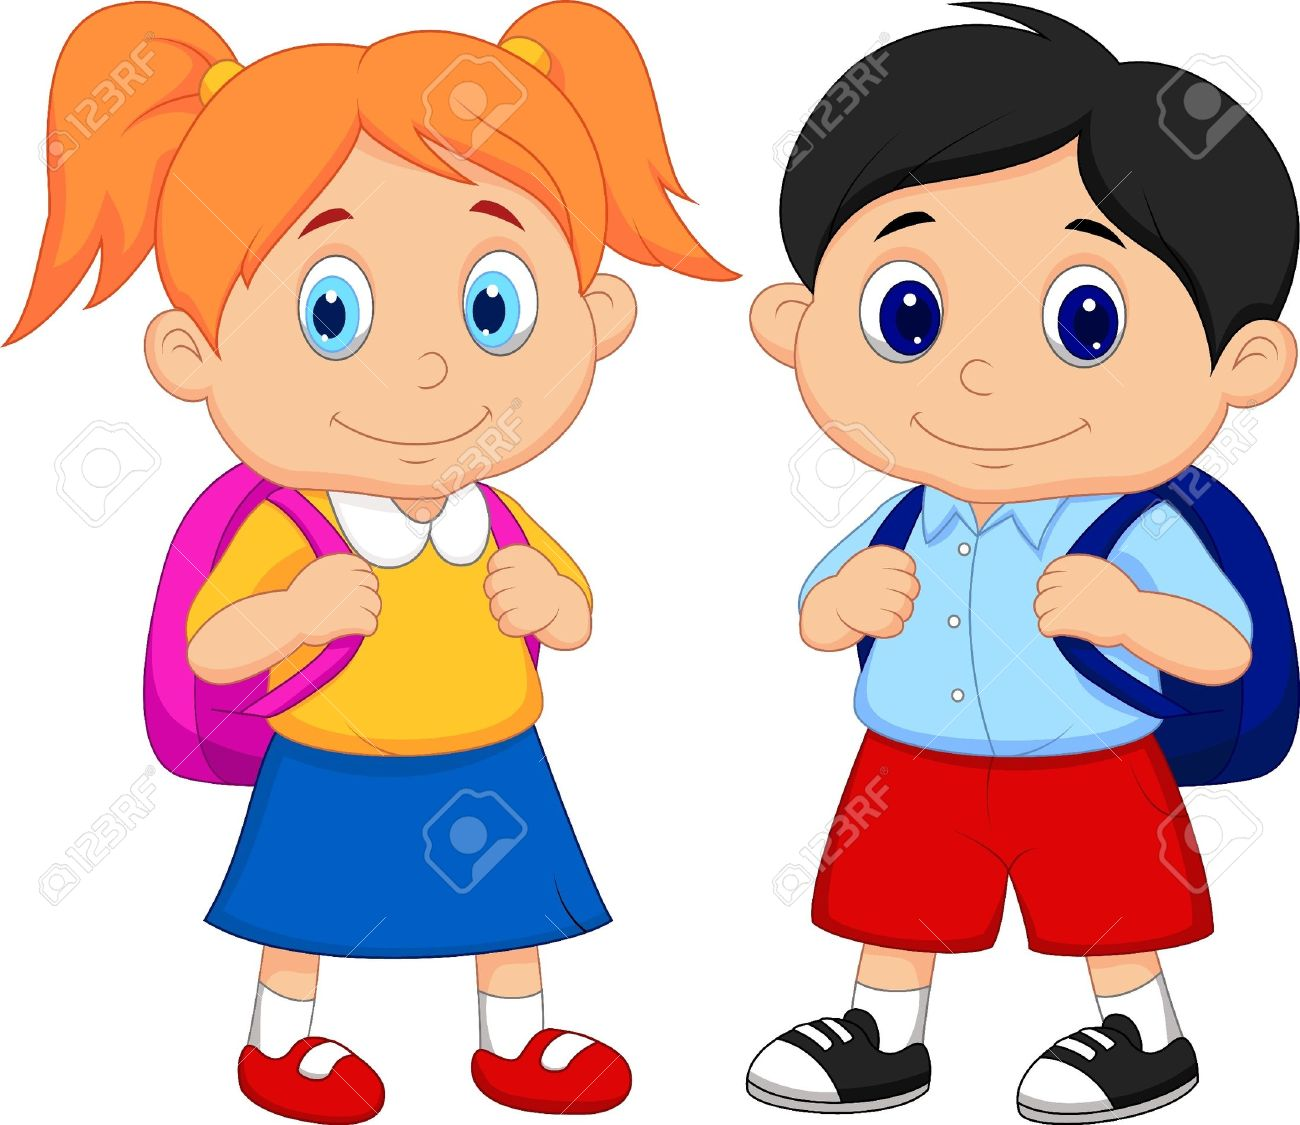 Bag clipart student. School with station